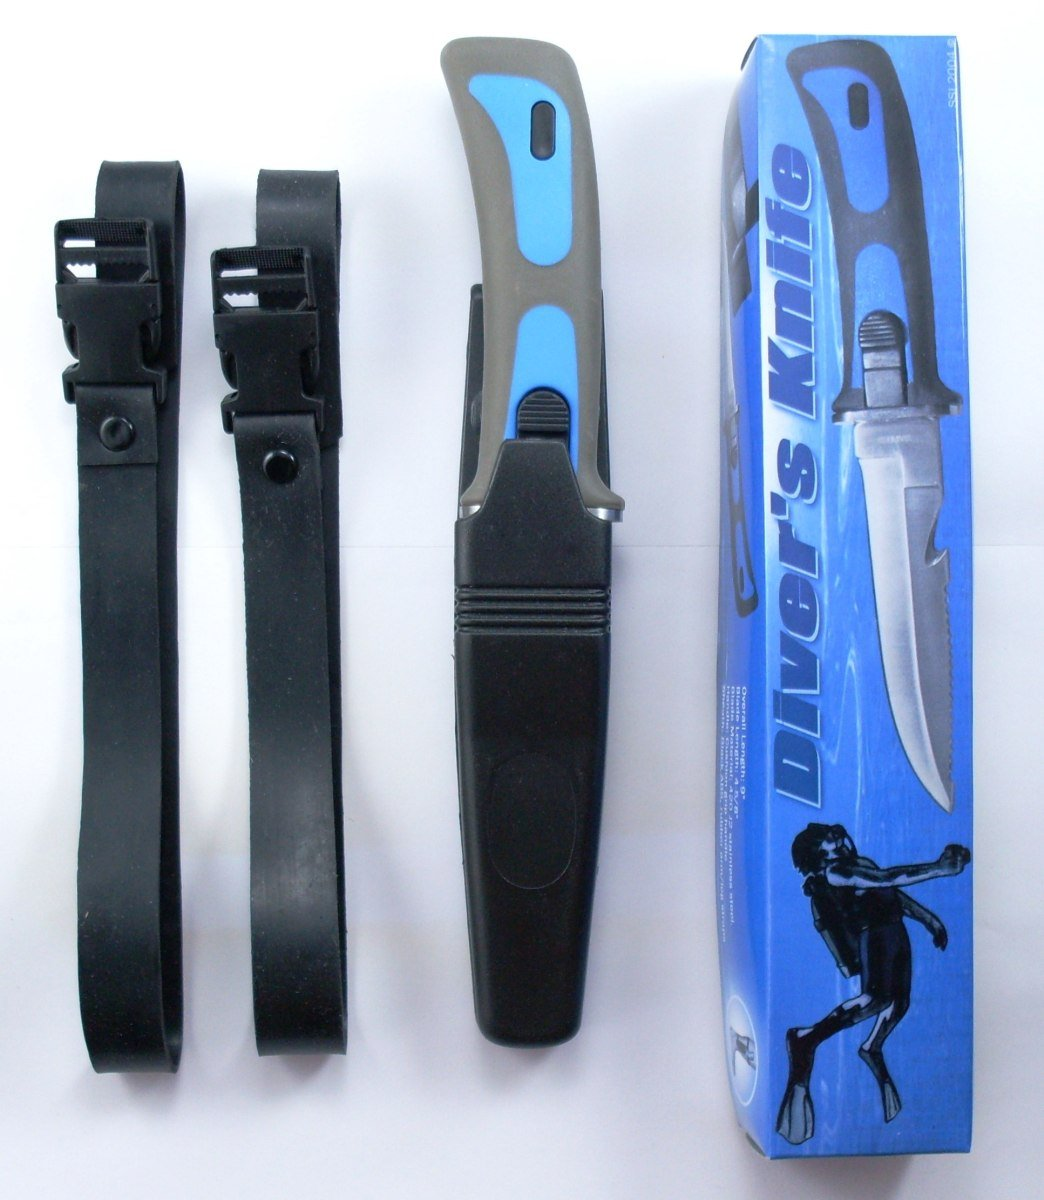 Scuba Diver Knives Diving Gear Knife Navy Seal Sheath Blue by Dive Master (Image #1)